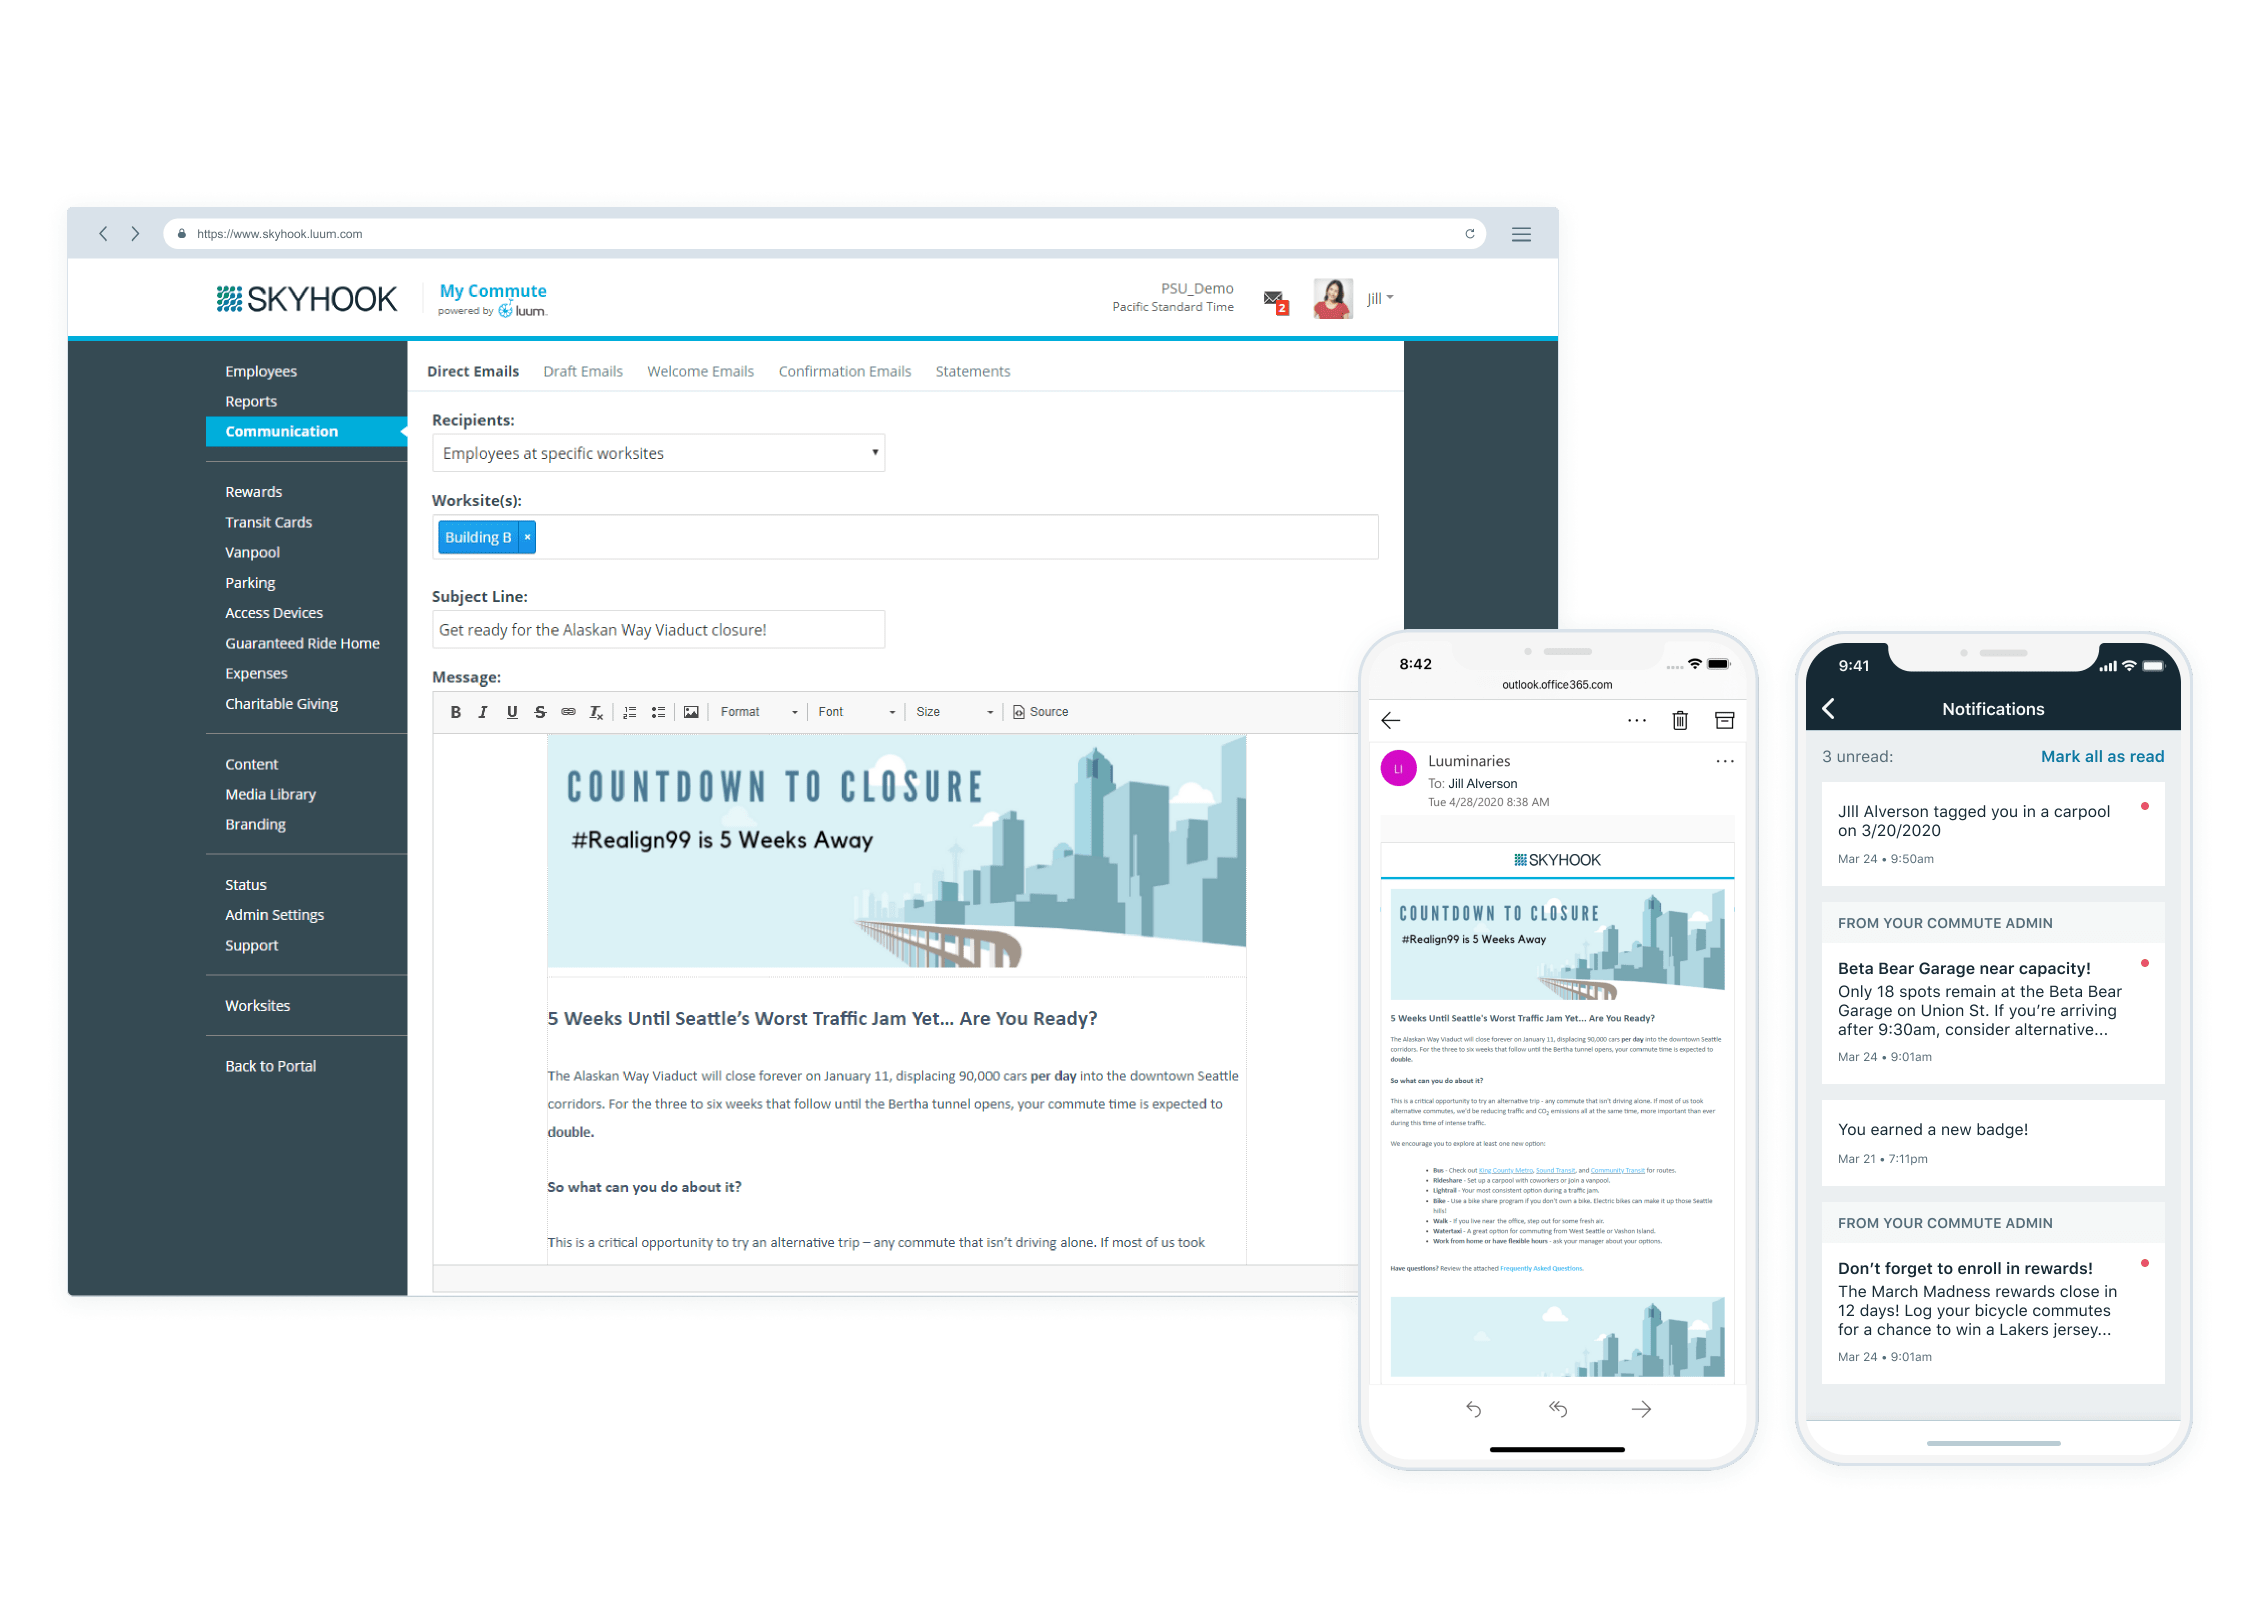 Communication Tools and Notifications